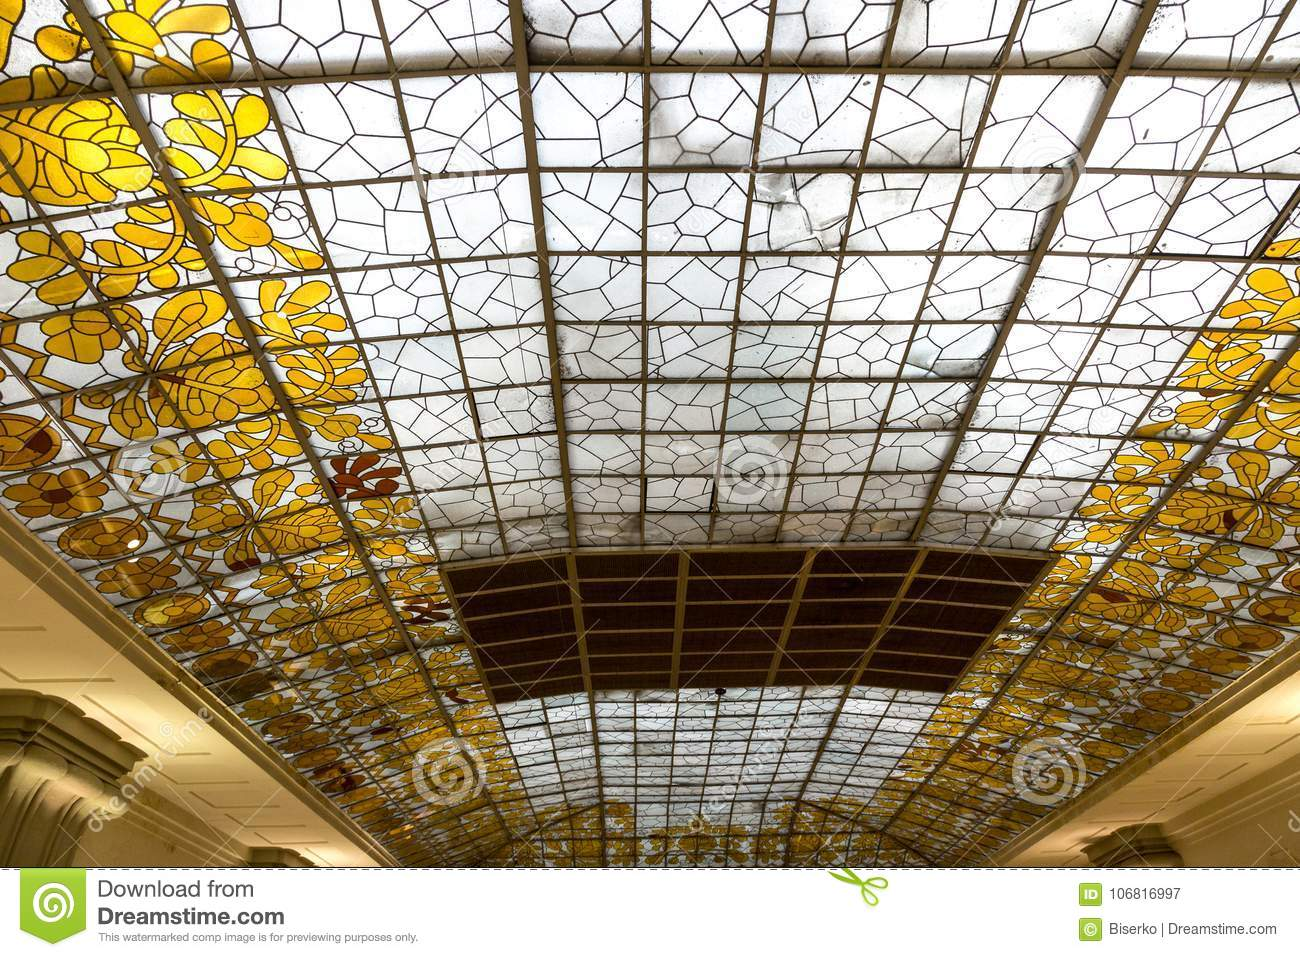 Decoration Art Deco Art Deco Glass Ceiling Stock Image Image Of Decoration 106816997